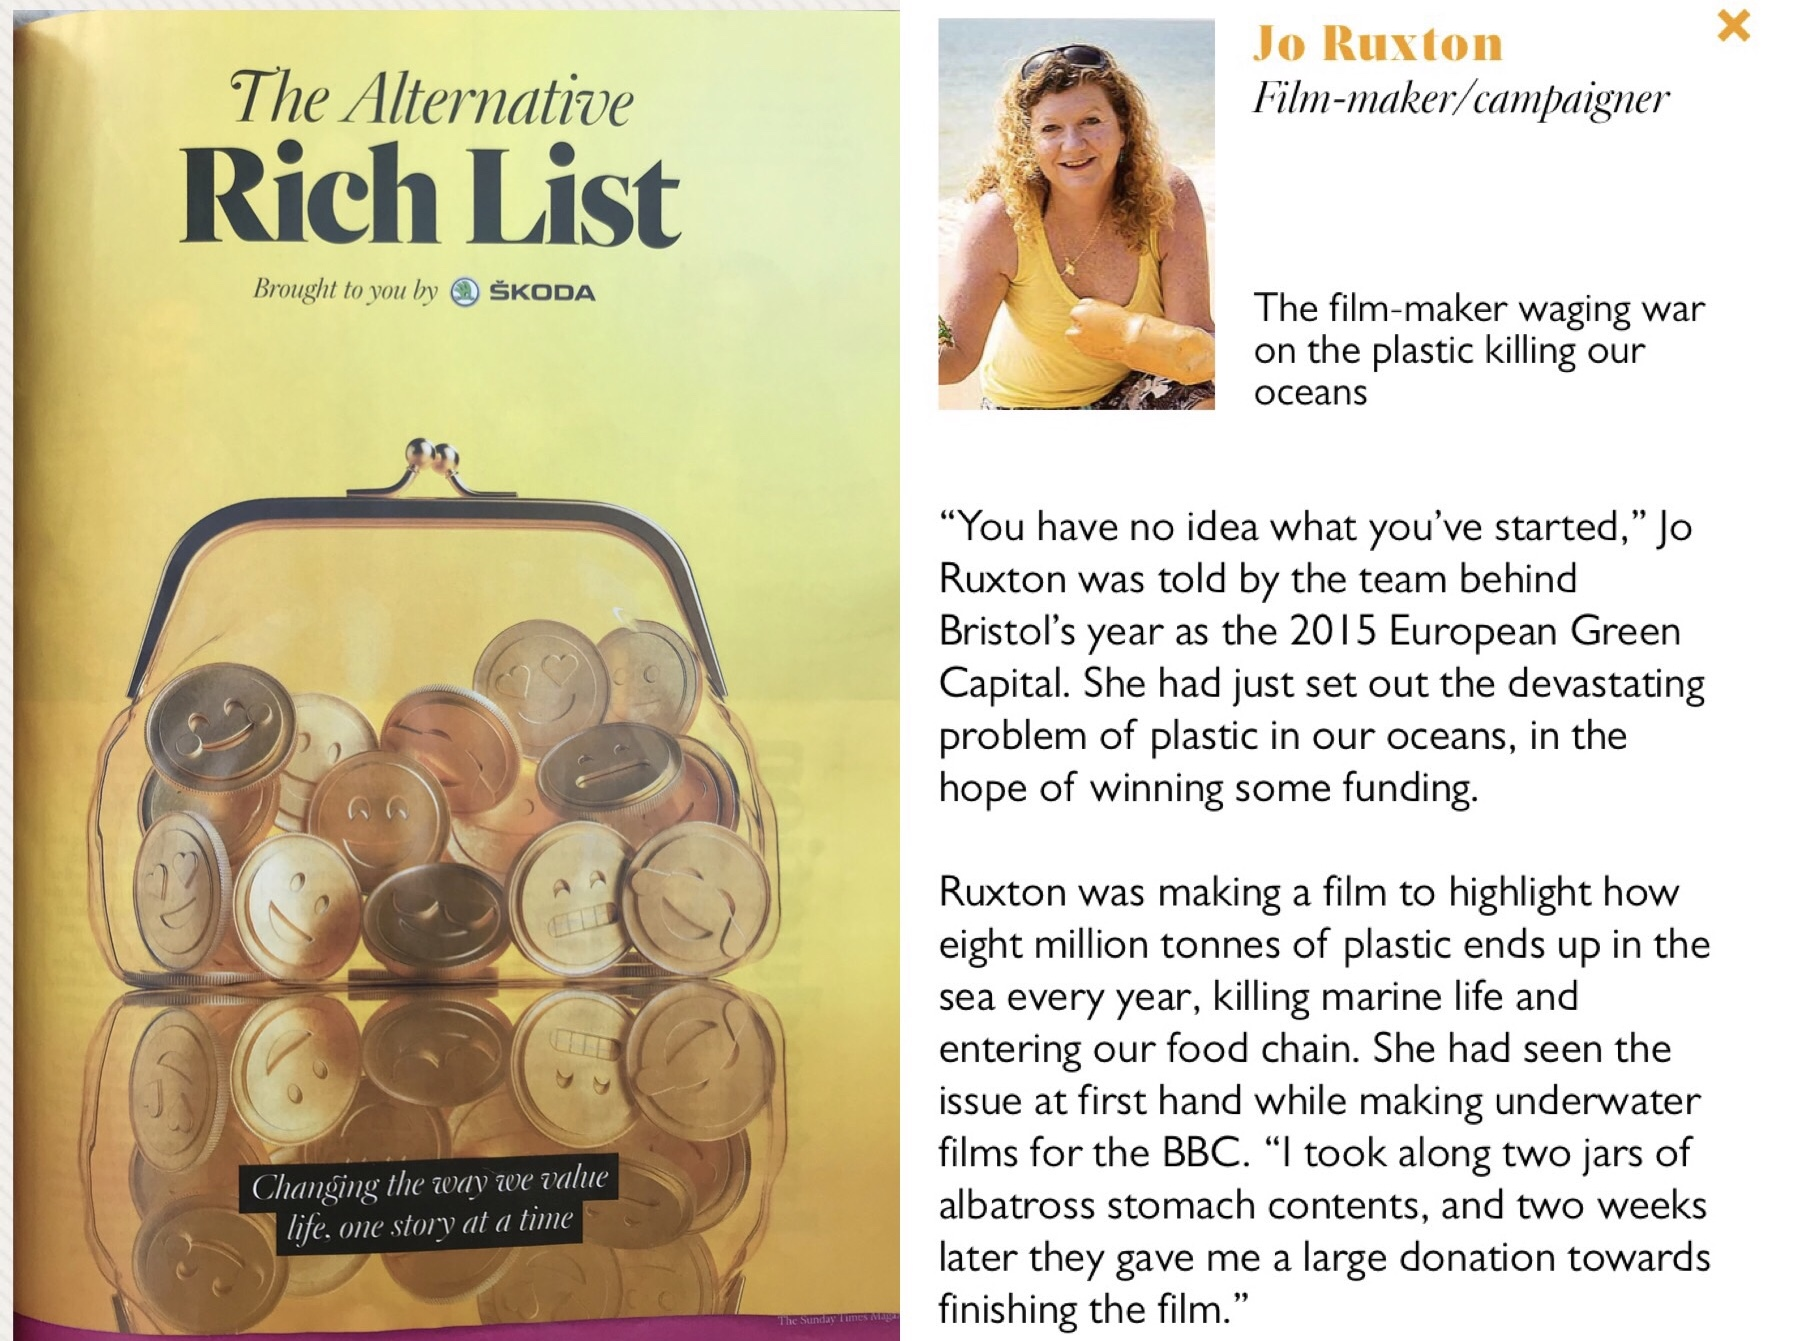 Jo Ruxton featured in Sunday Times Alternative Rich List